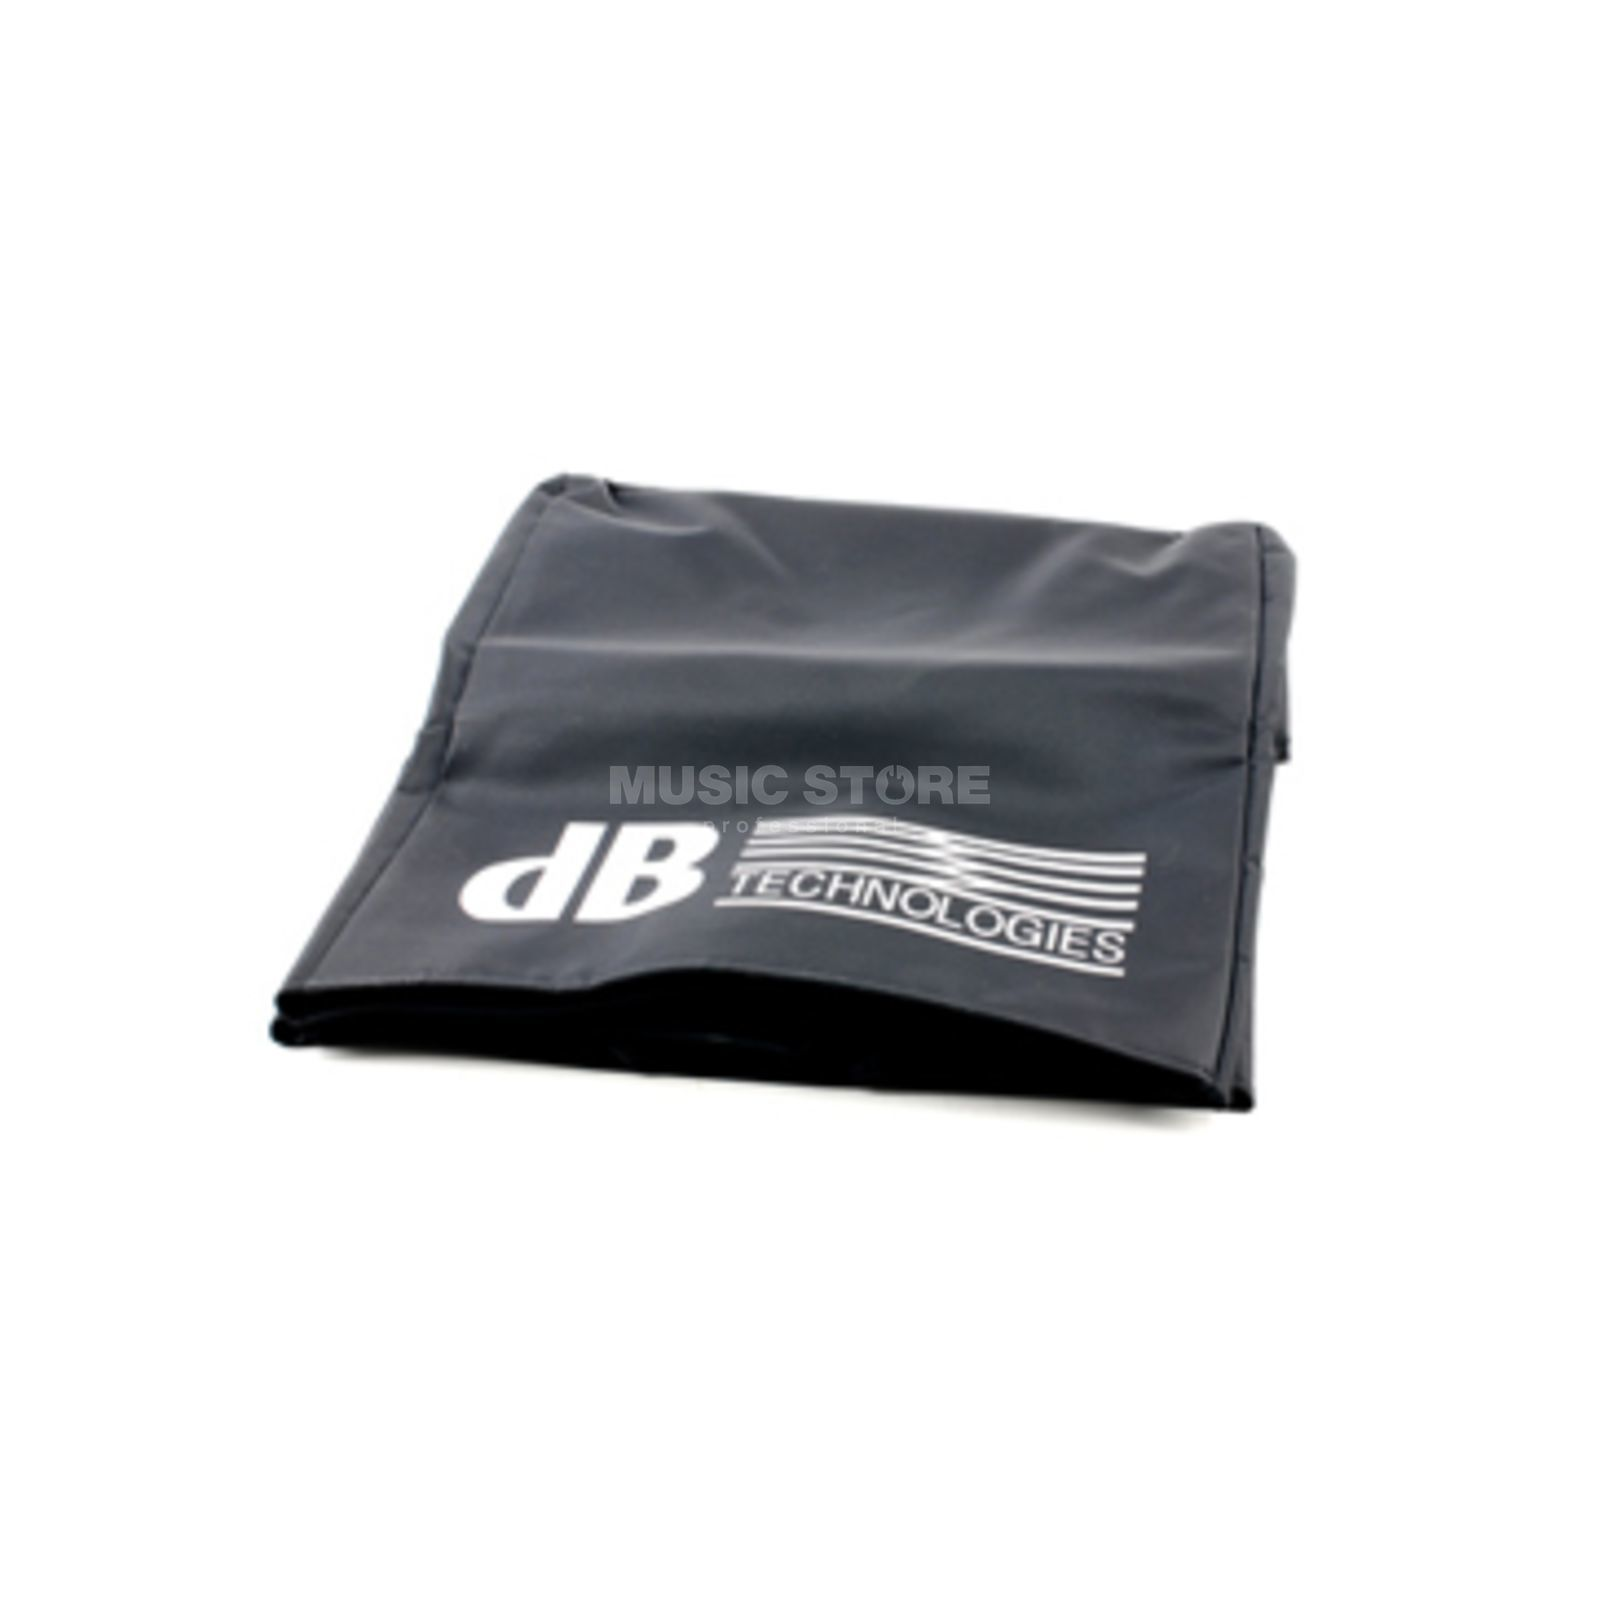 dB Technologies TC 20S Protective Cover for DVA S20 and S30 Subwoofer Produktbillede